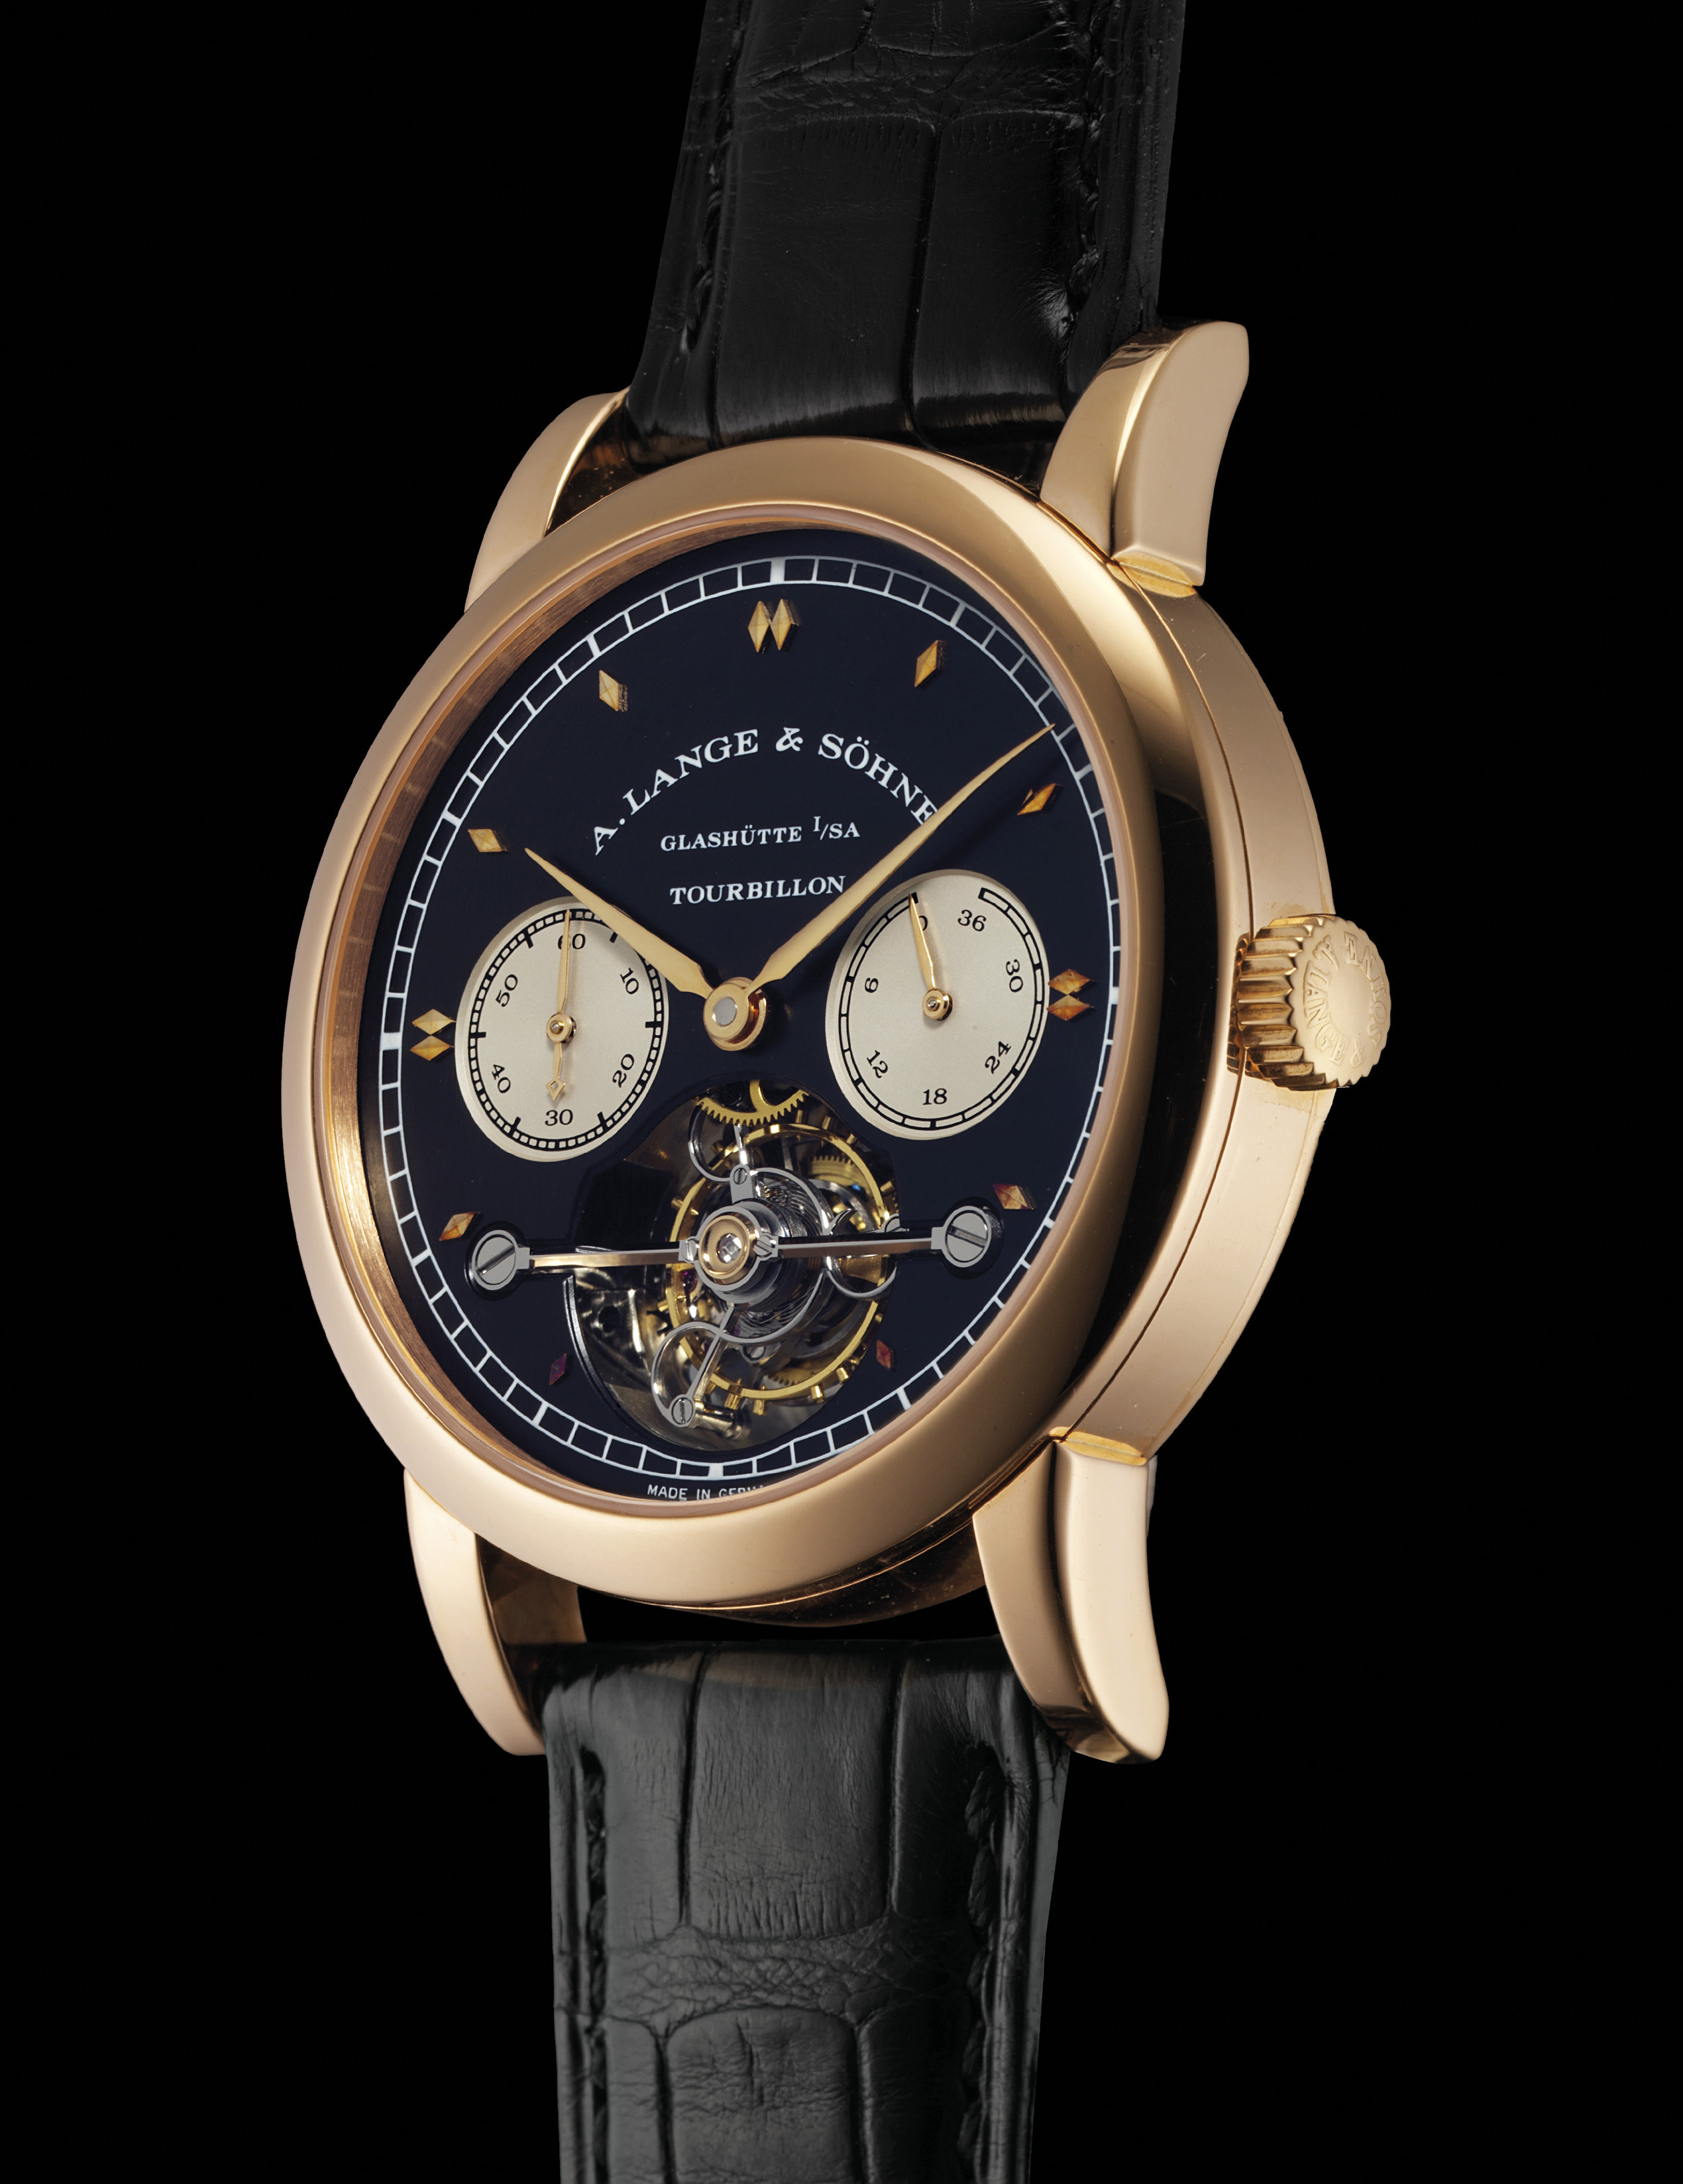 A. LANGE & SÖHNE. A VERY RARE AND FINE 18K PINK GOLD LIMITED EDITION TOURBILLON WRISTWATCH WITH CHAIN FUSÉE, POWER RESERVE AND BLACK DIAL